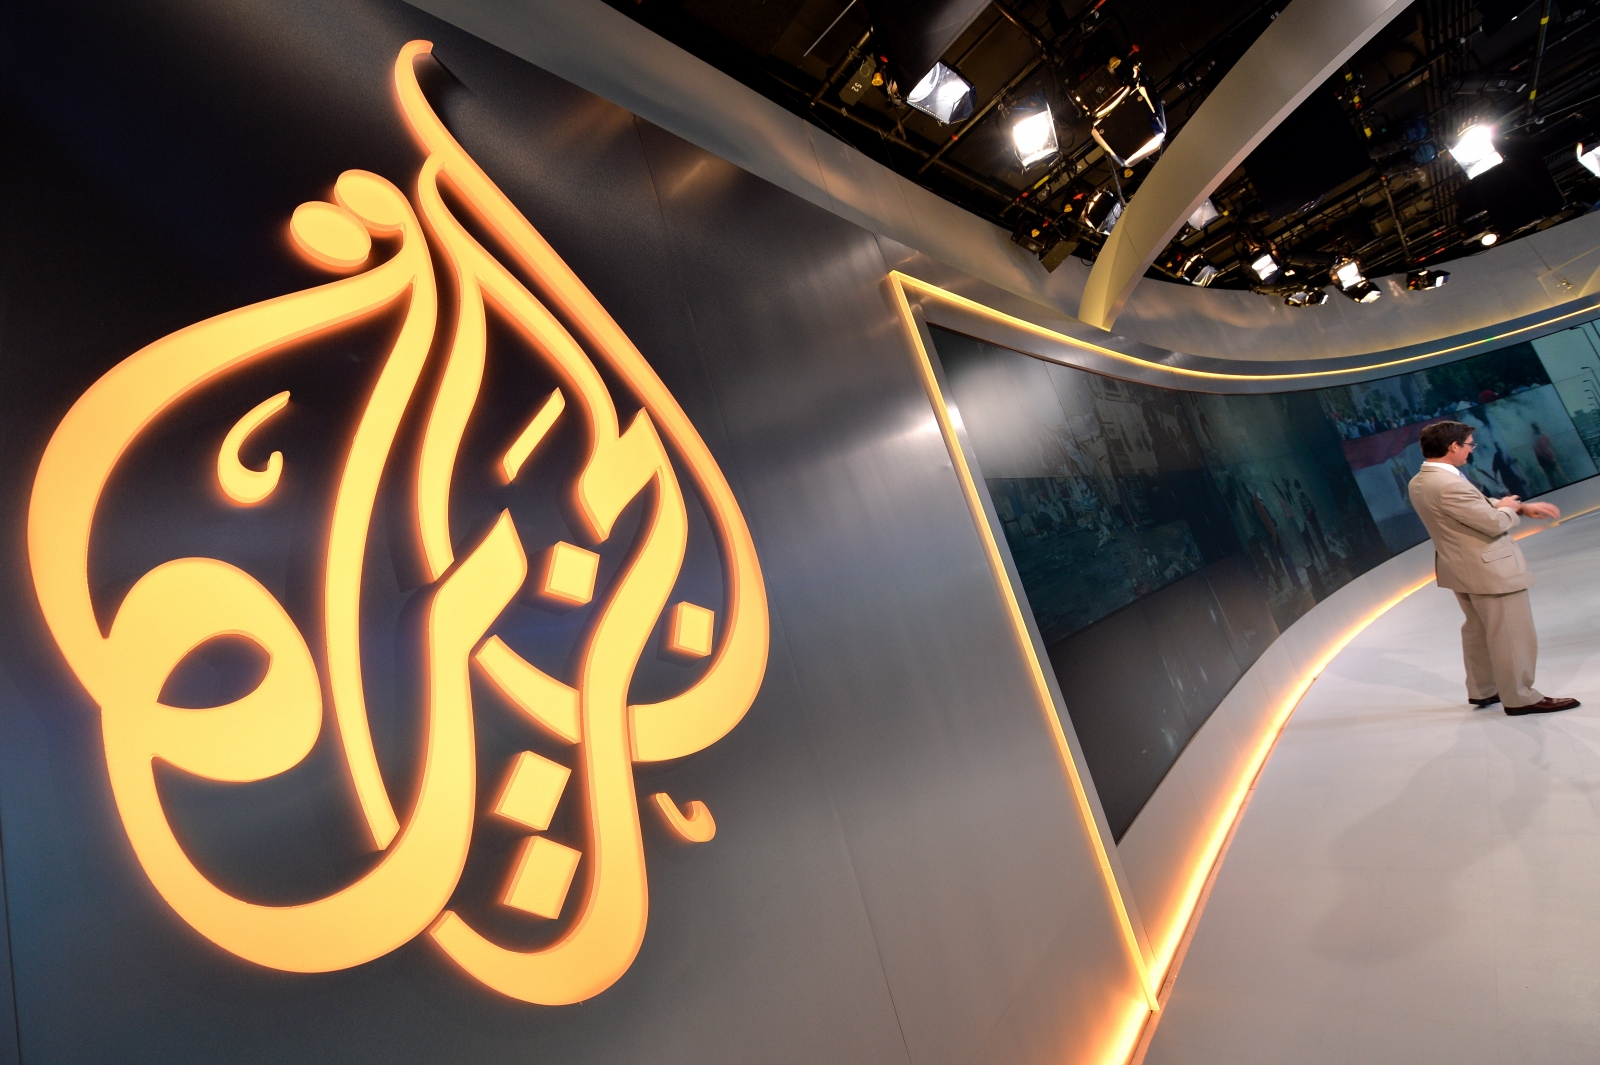 Al Jazeera has been taken off the